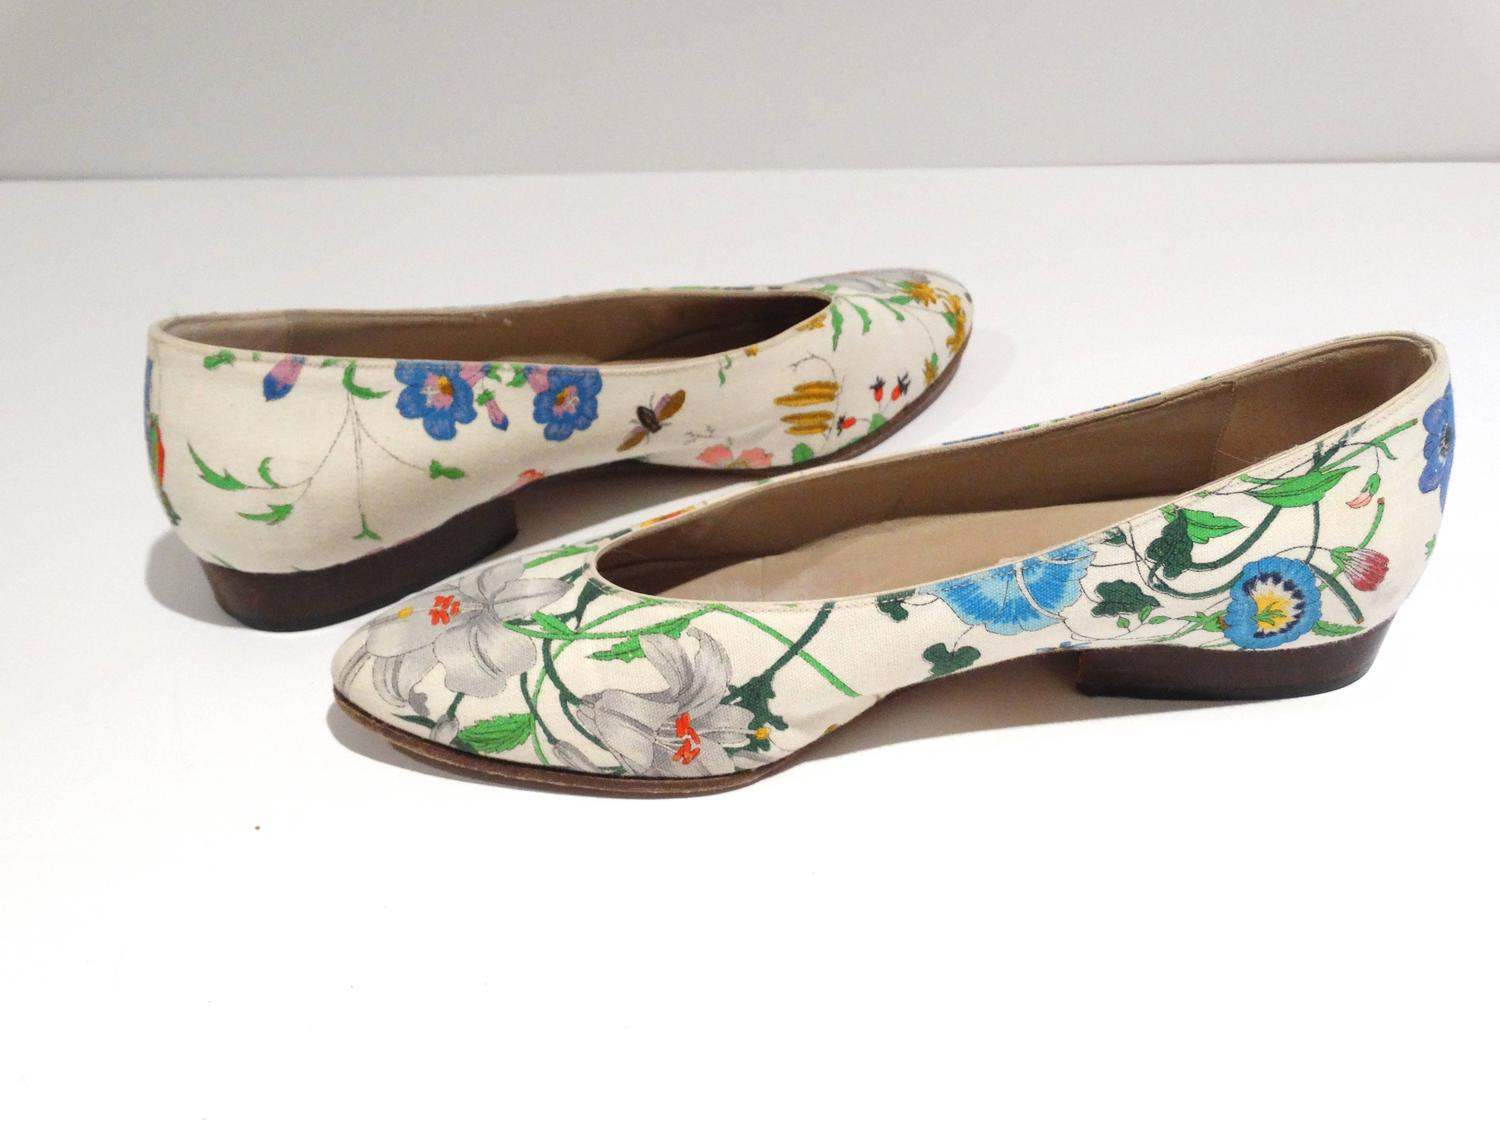 1980s Gucci Quot Flora Quot Print Flats For Sale At 1stdibs